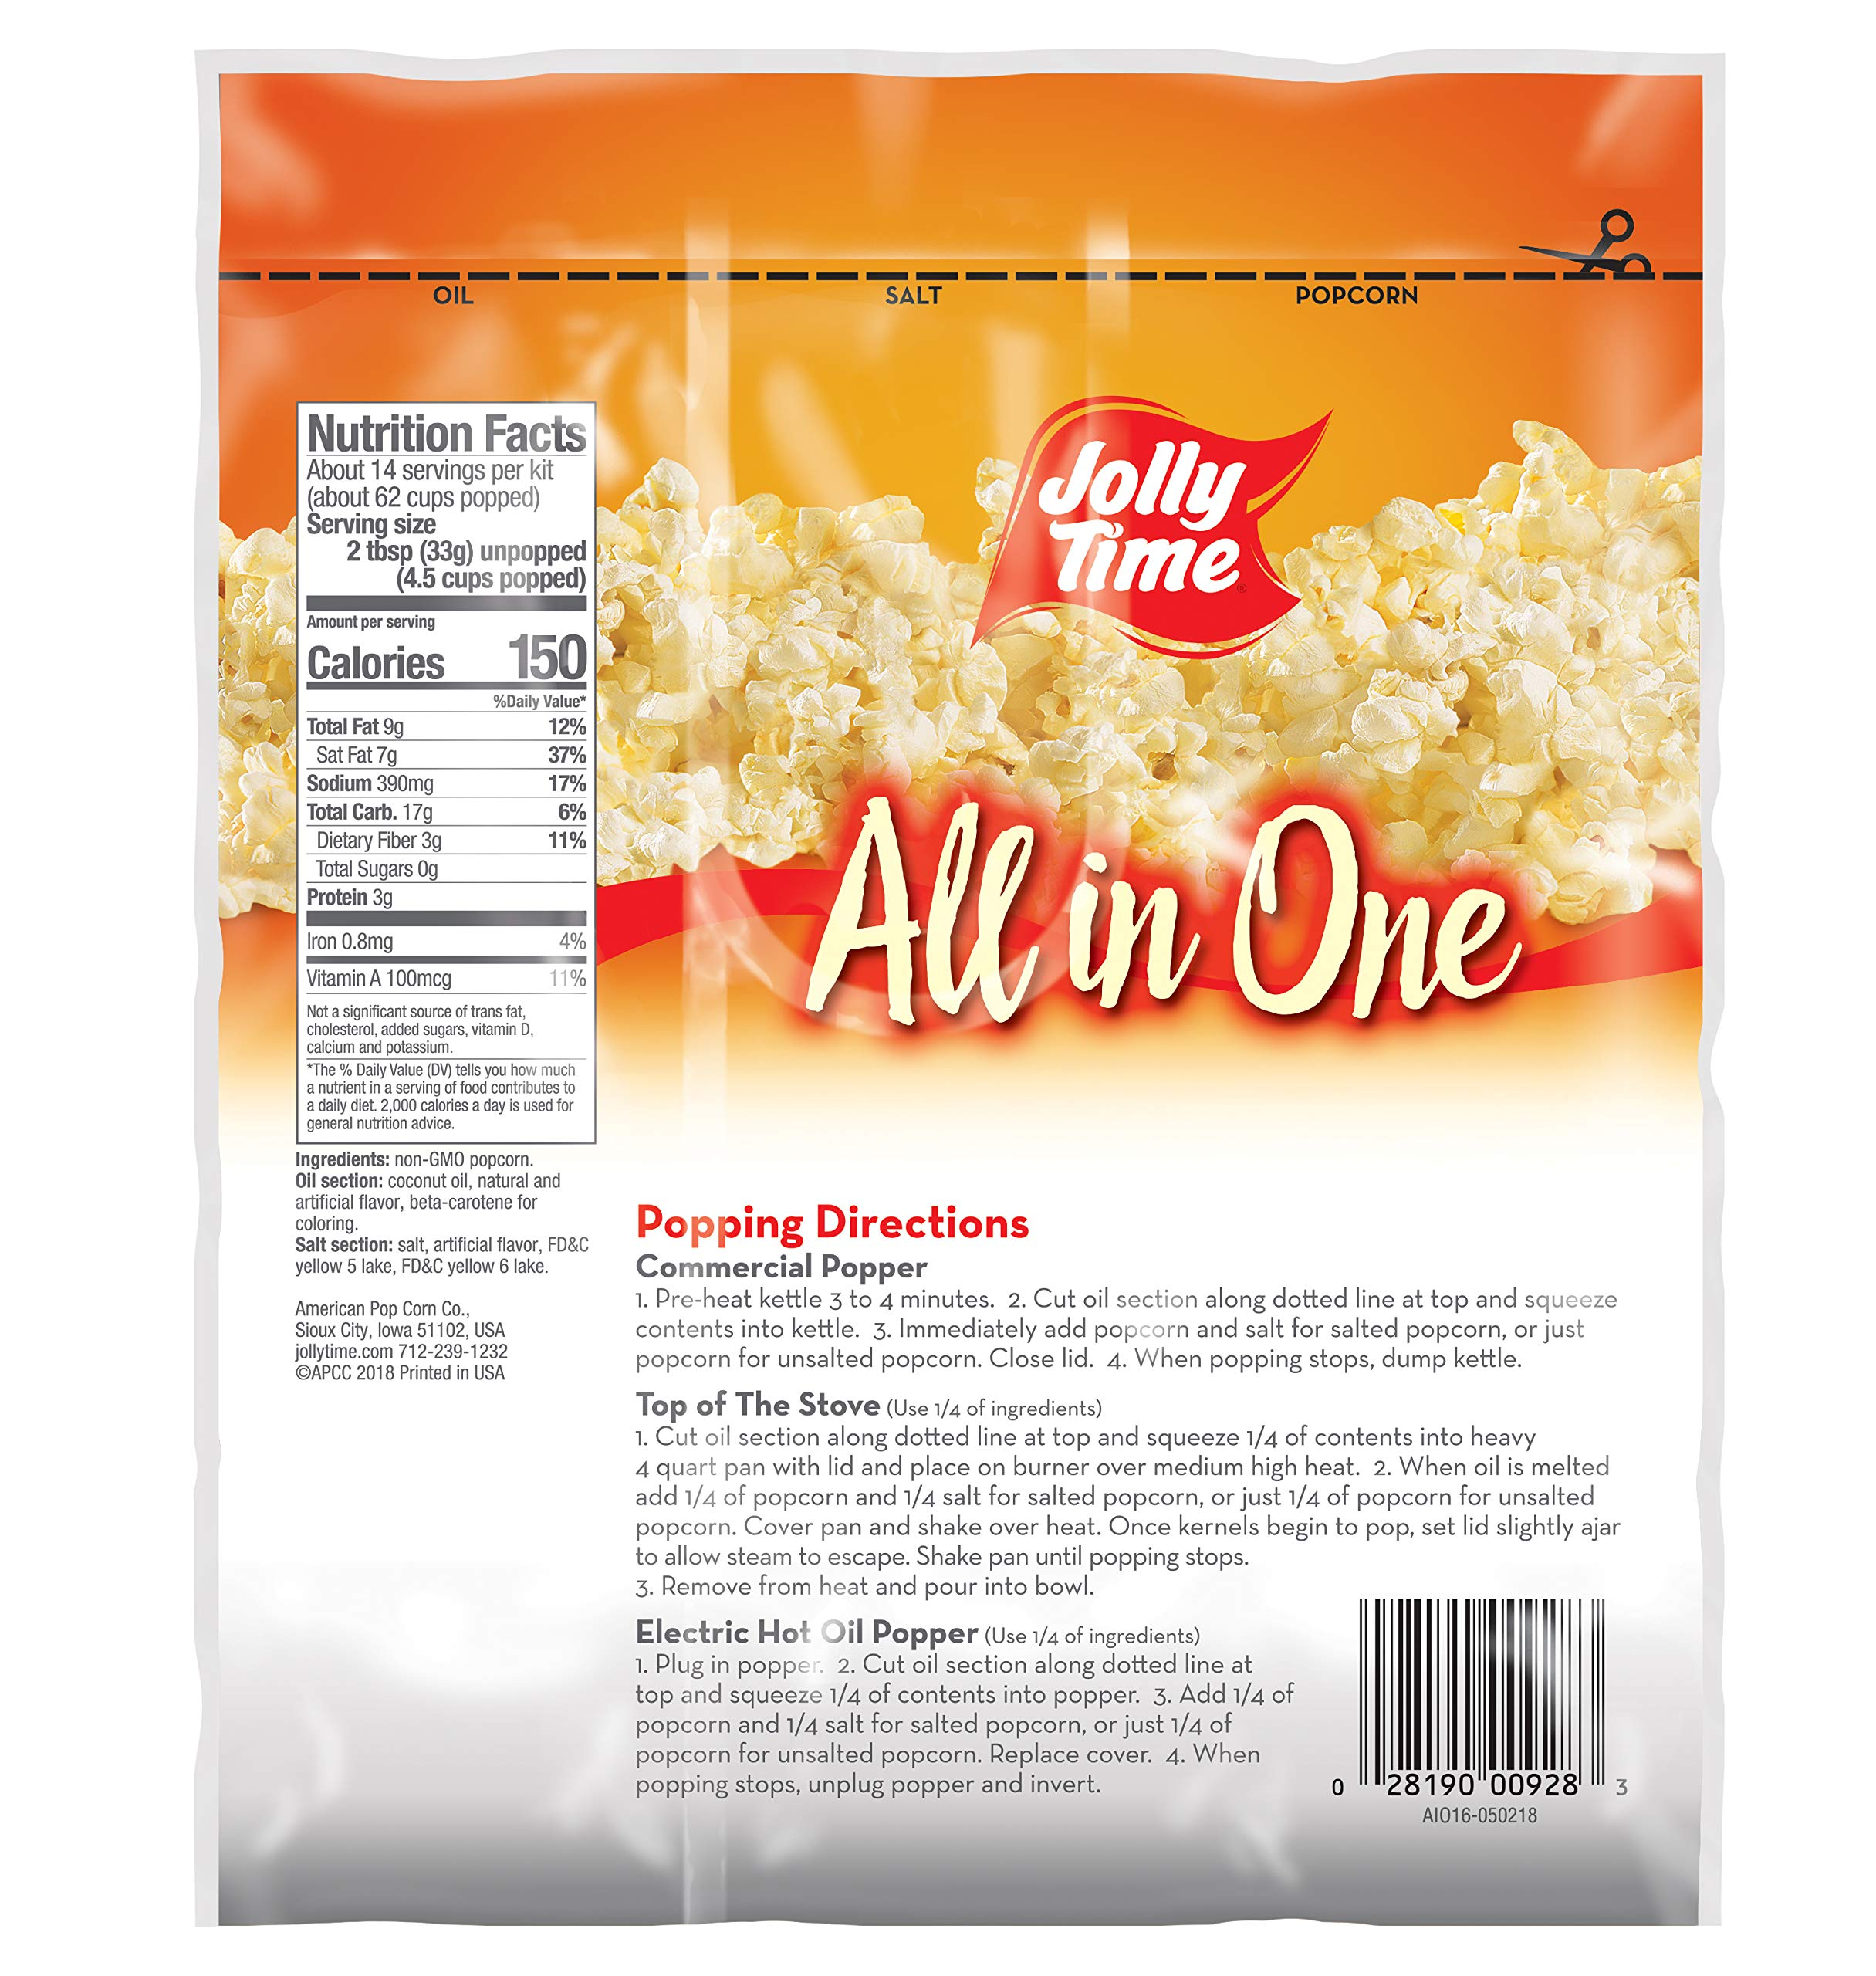 JOLLY TIME All in One Kit for 12 oz. Popcorn Machine | Portion Packet with Kernels, Oil and Salt Commercial, Movie Theater or Air Popper (Net Wt. 16 oz. Each, Pack of 24) by Jolly Time (Image #3)